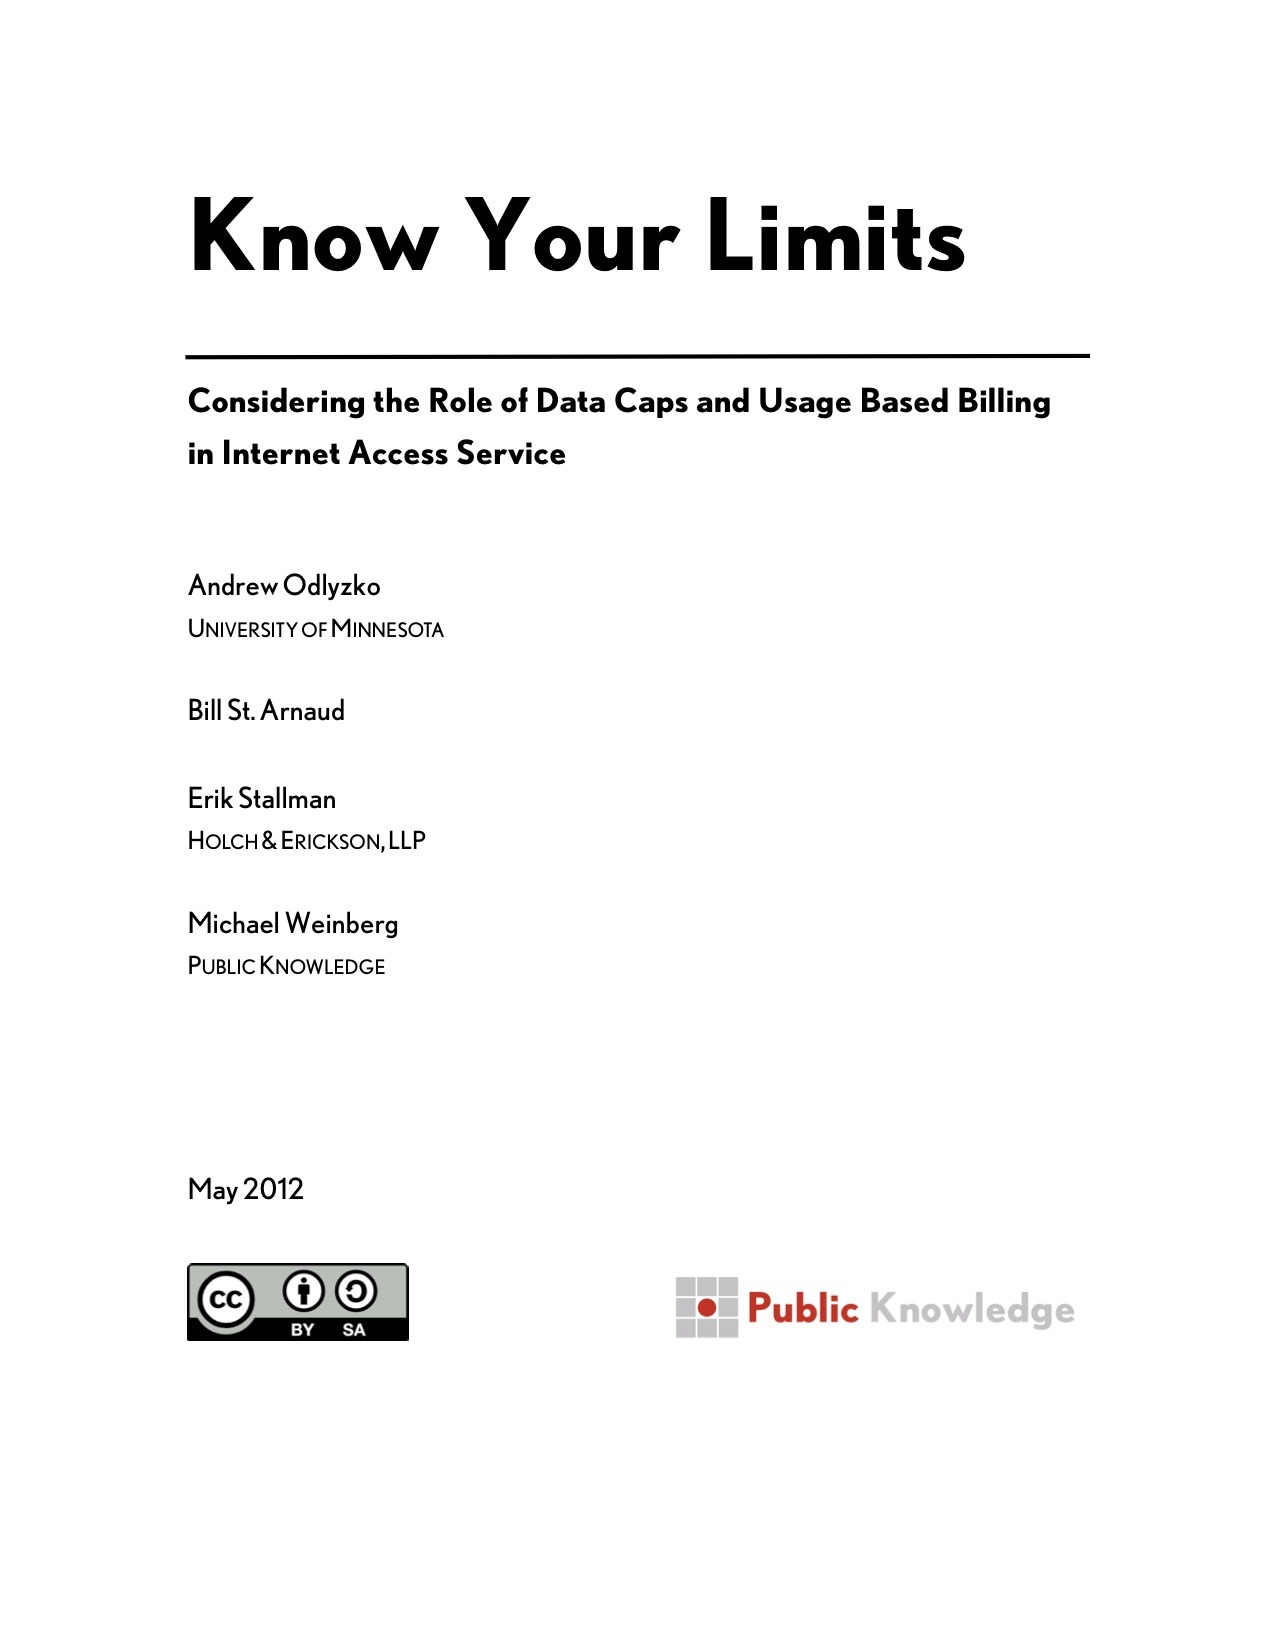 This whitepaper is a thorough analysis of role that data caps and usage based billing can play in internet access service.  It ends with a series of recommendations for regulators. A PDF version of this paper can be found here.